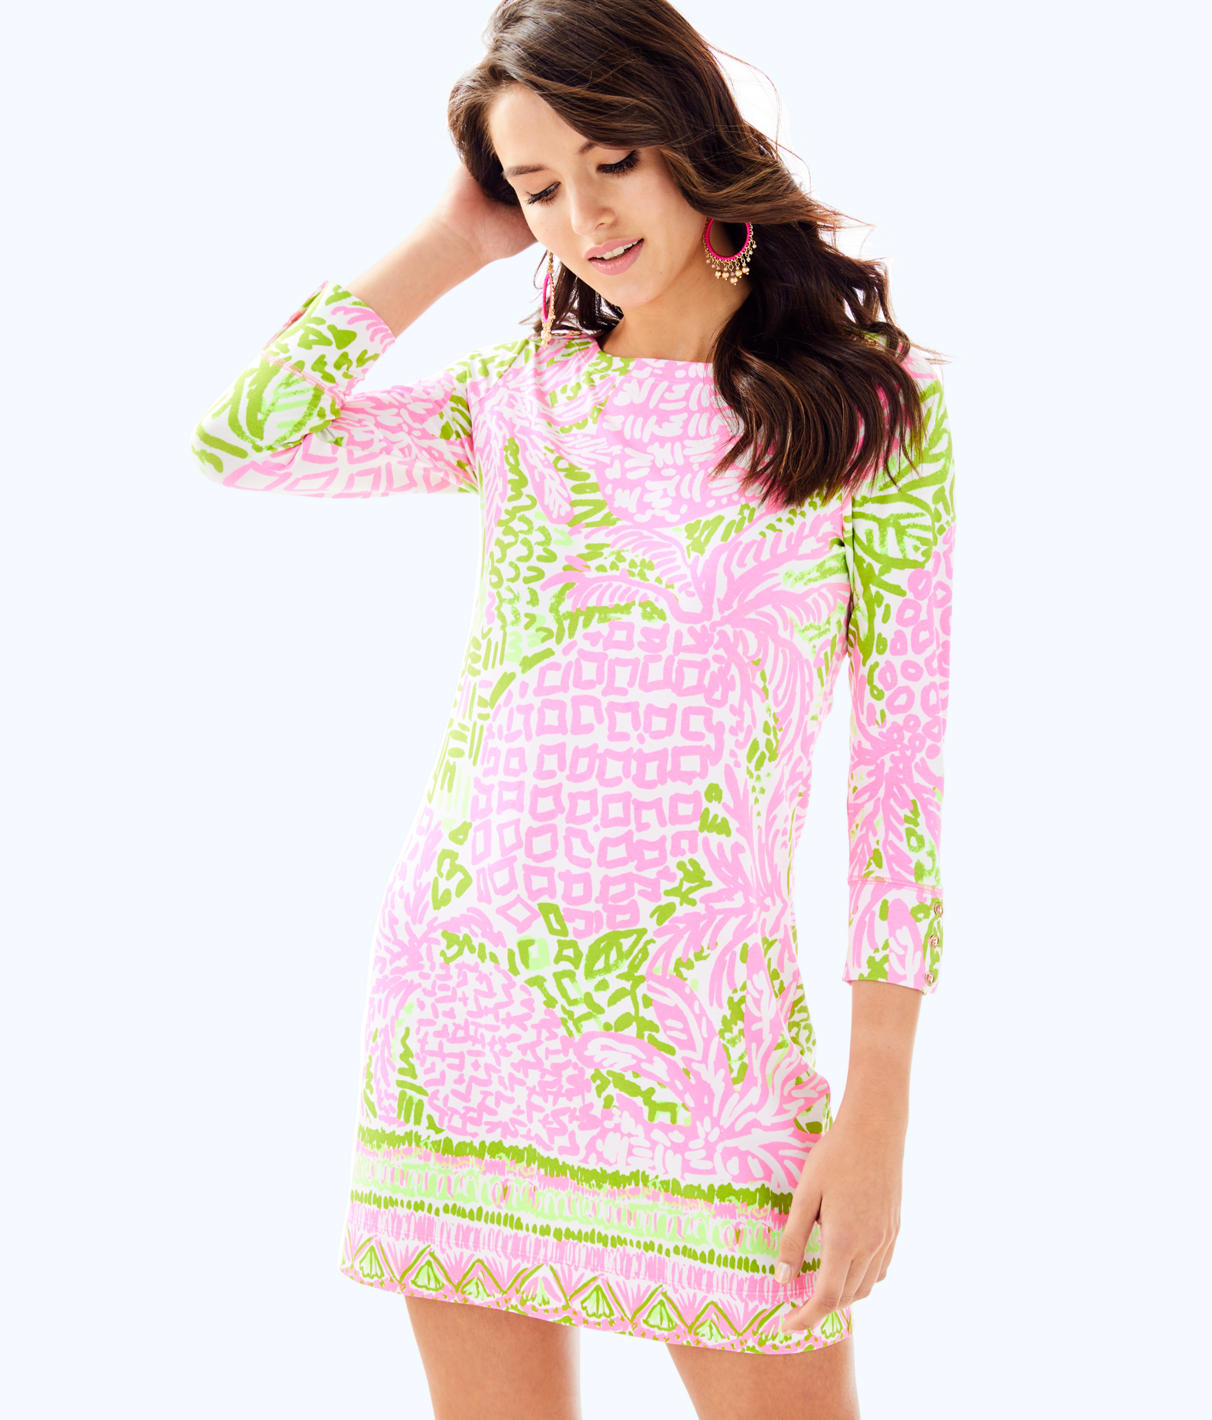 Lilly Pulitzer Lilly Pulitzer Womens UPF 50+ Sophie Dress